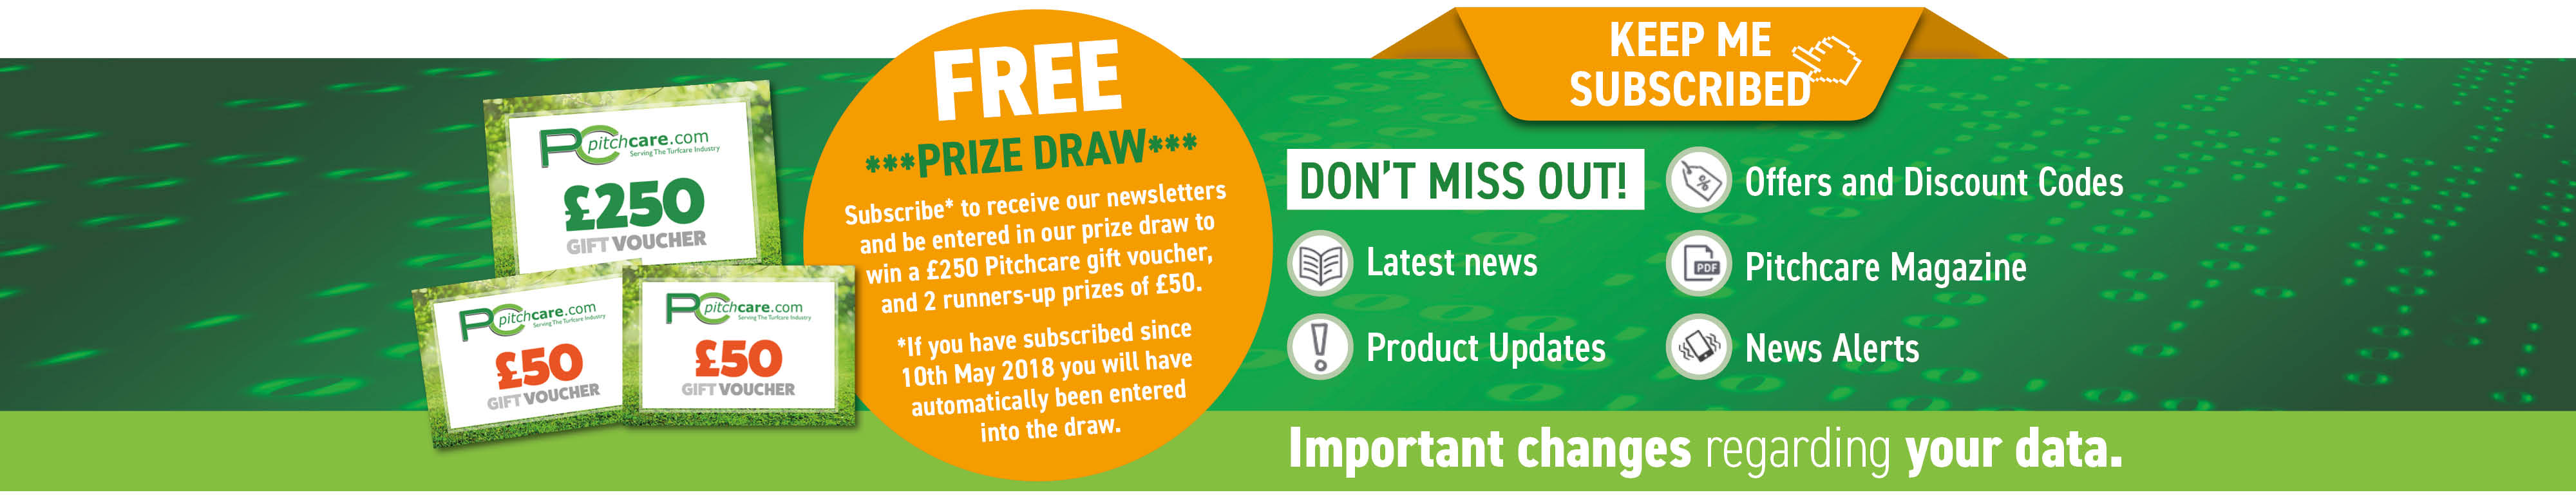 GDPR PC Shop Free Prize Draw Slider